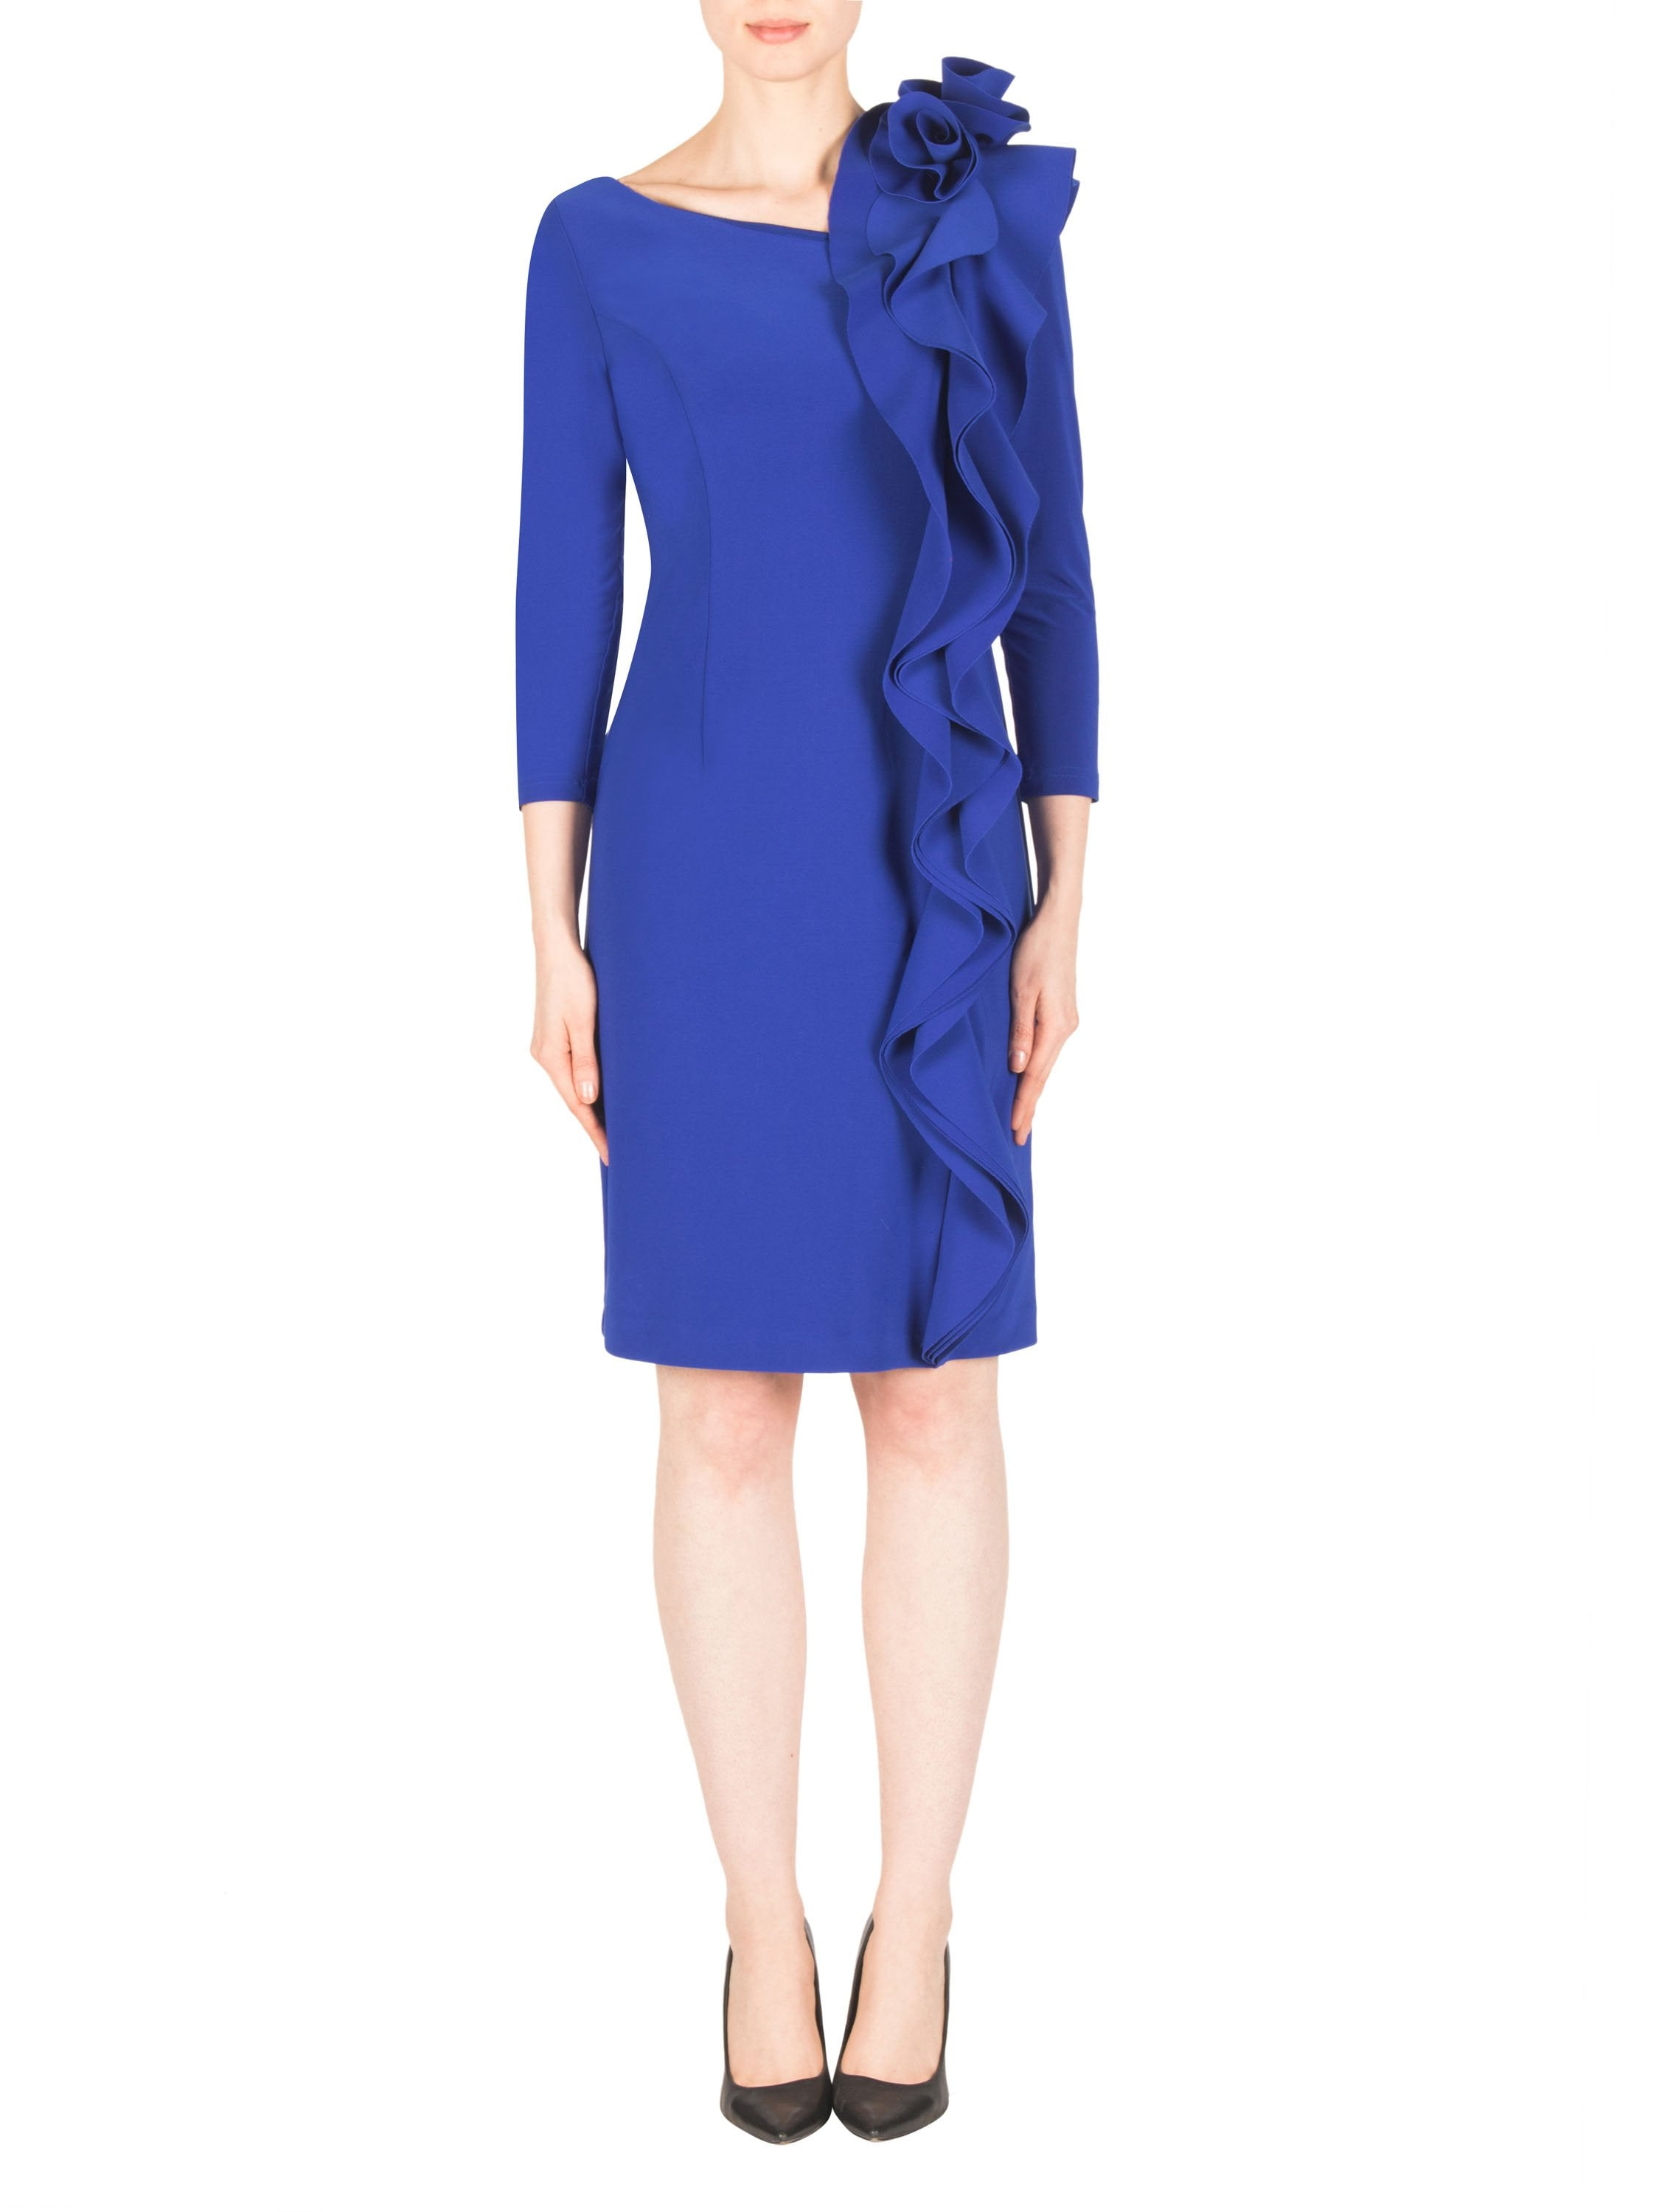 Joseph Ribkoff Cobalt Blue Shift Dress With Rosette On Shoulder